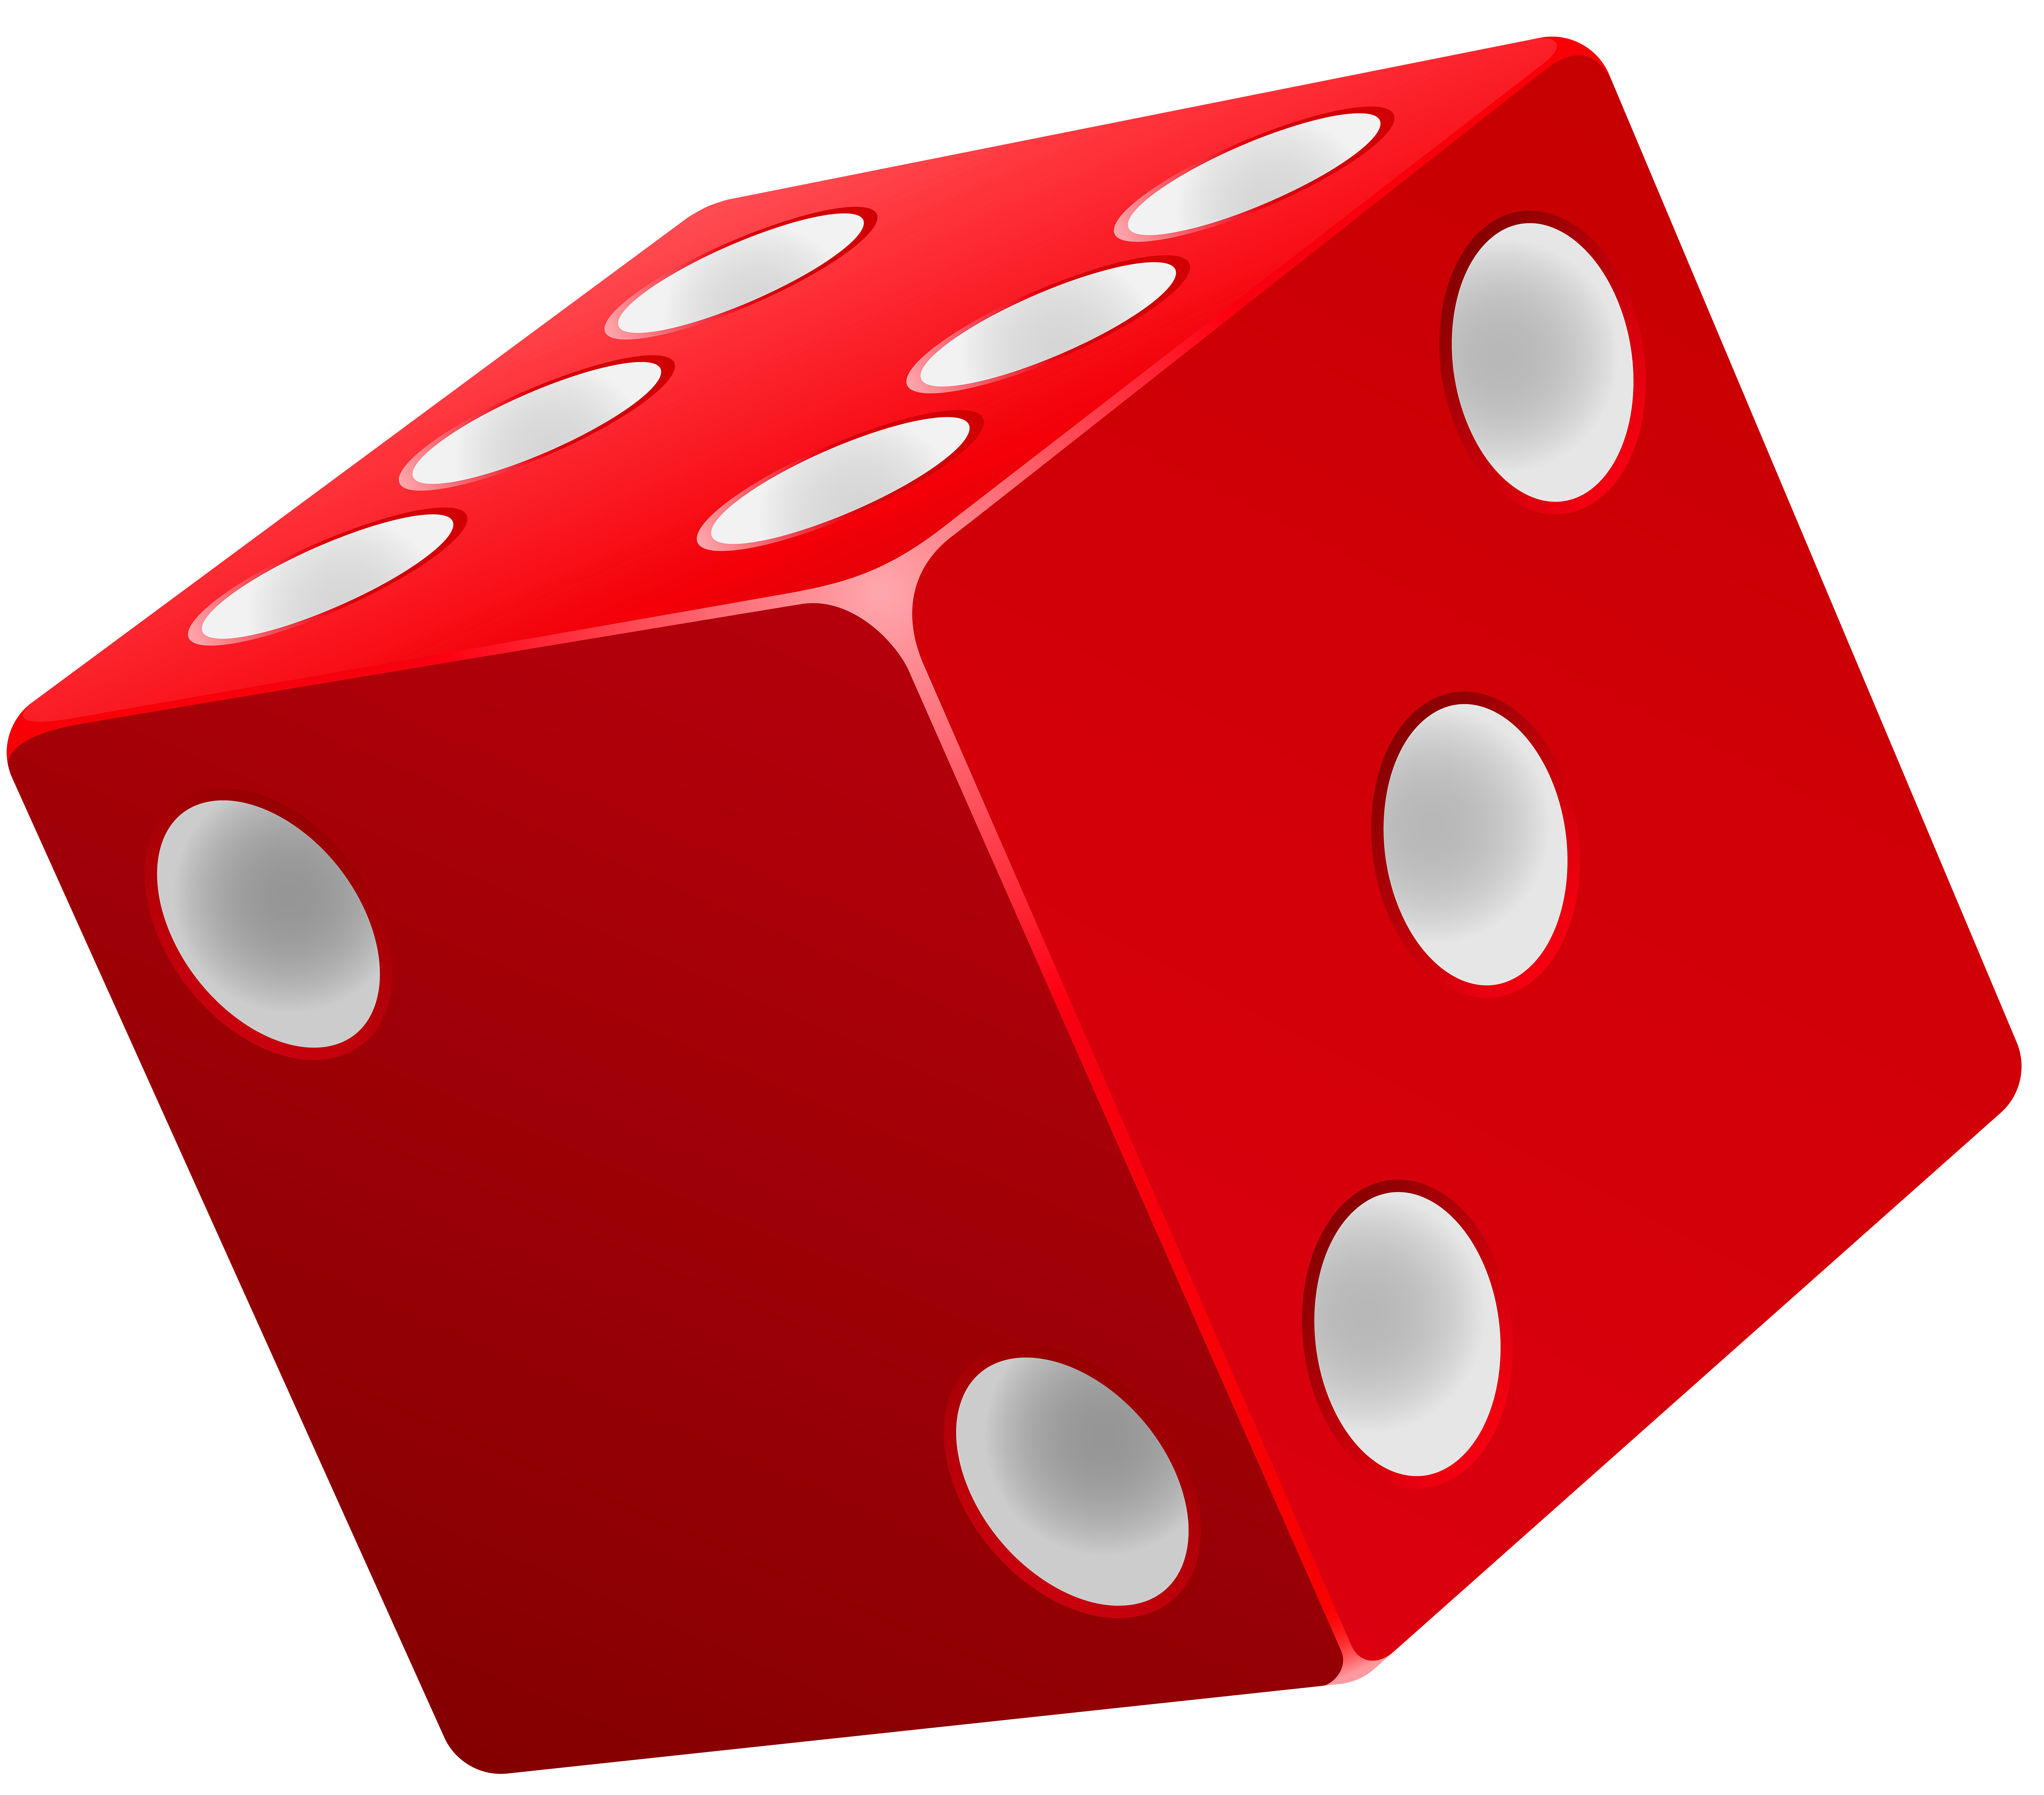 Dice images clipart png library library Dice Red PNG Clip Art - Best WEB Clipart png library library